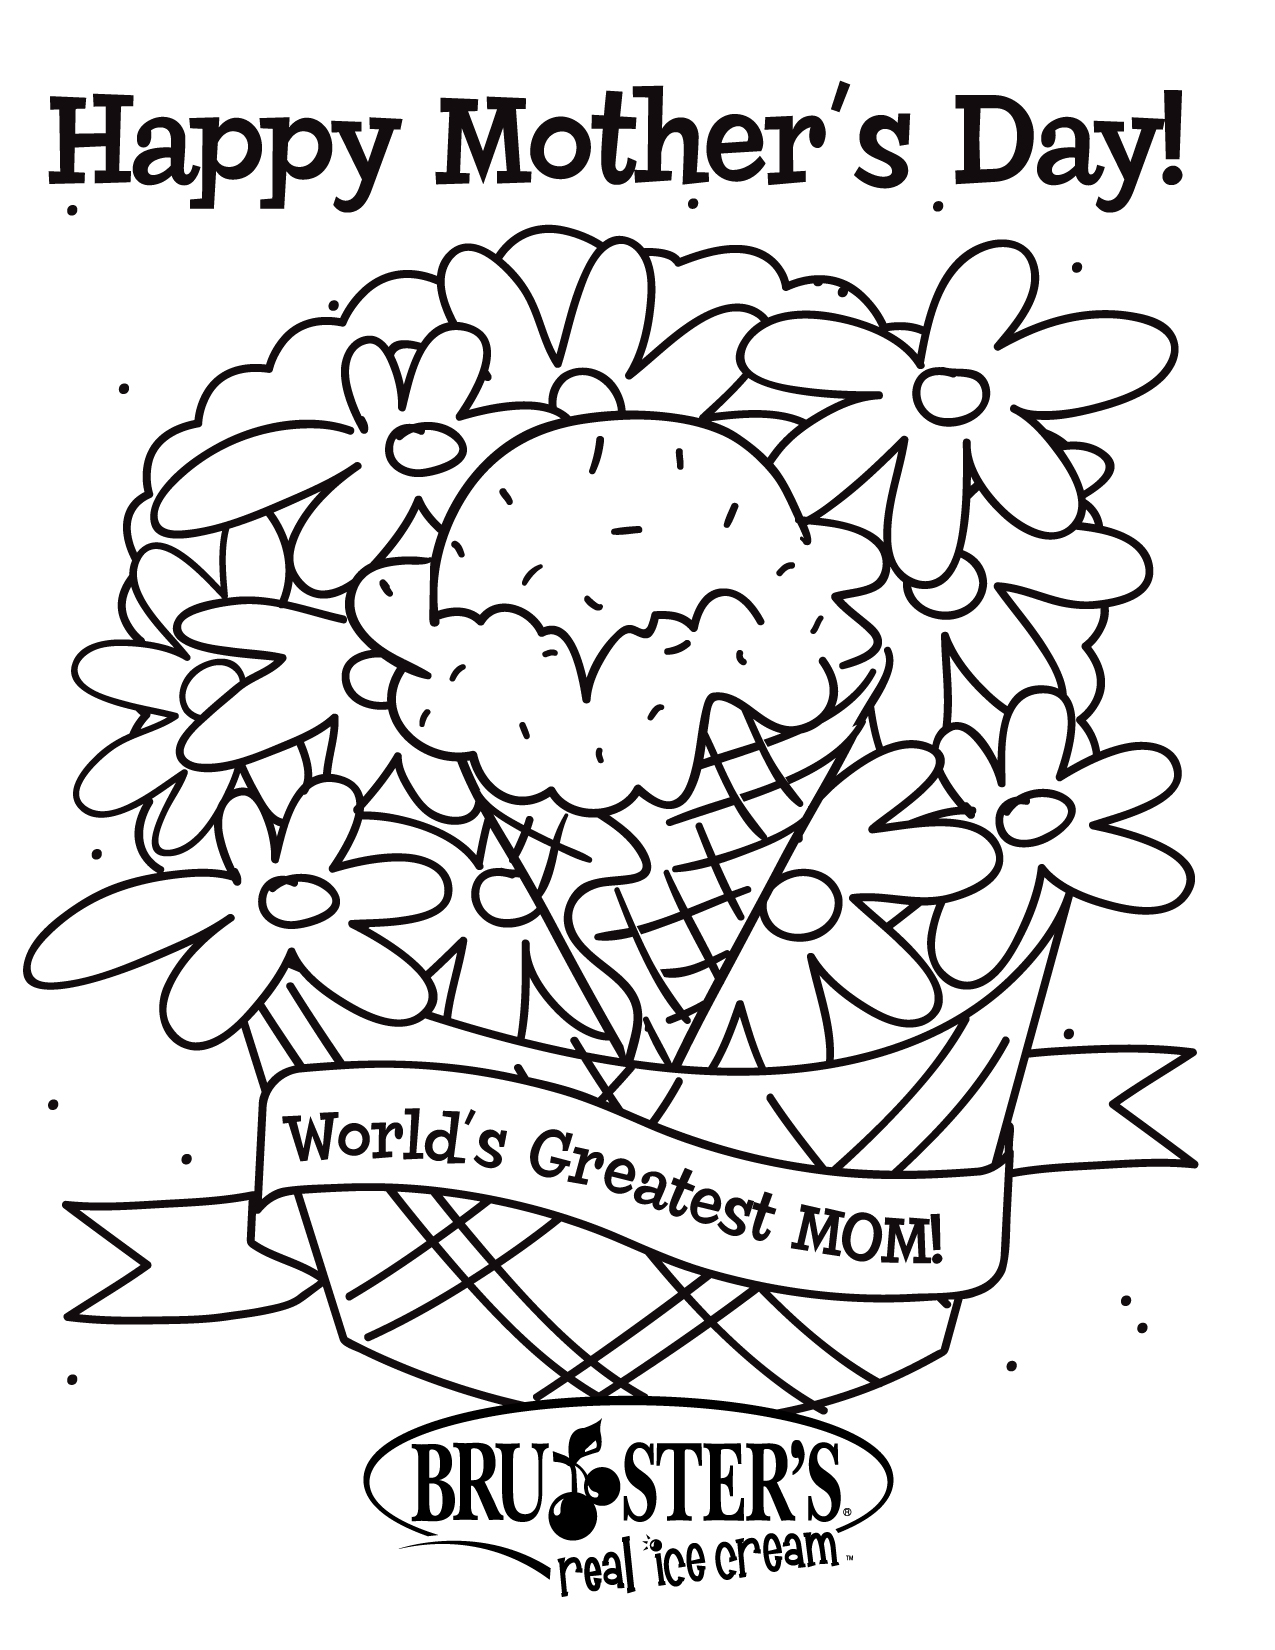 Free Coloring Pages Of Happy Mother S Day Mothers Day Colouring Pages